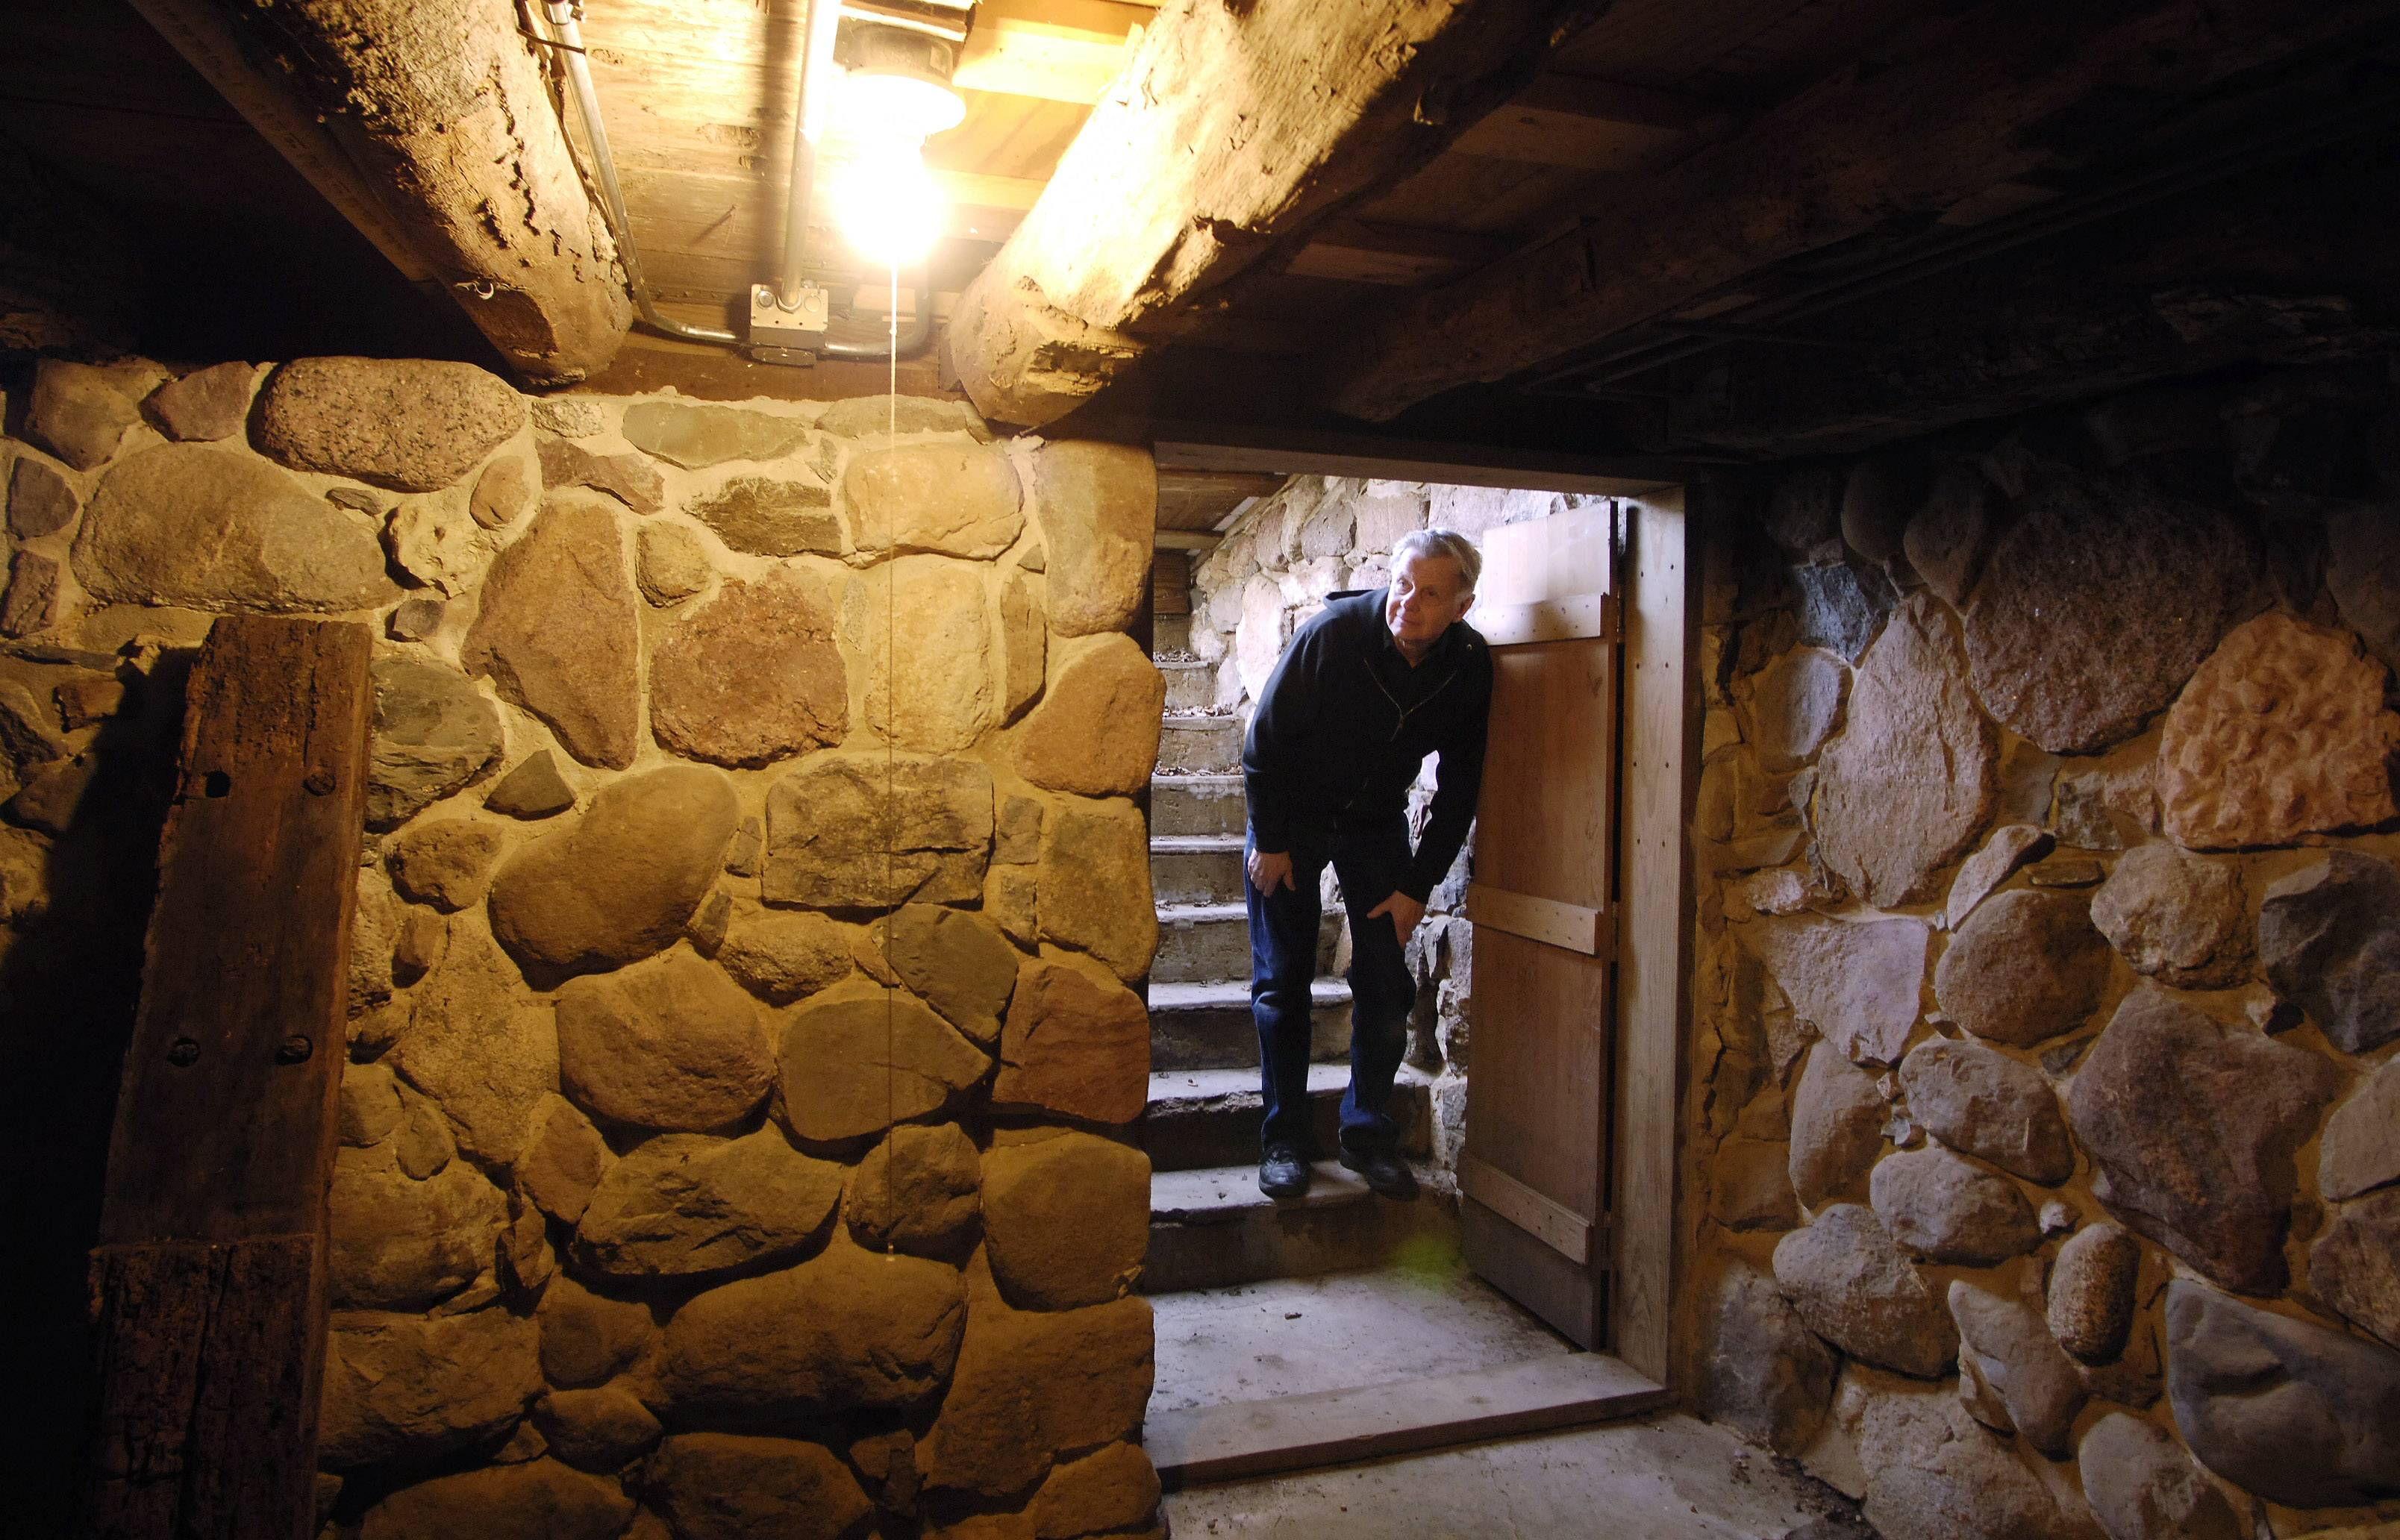 Tom Mellen peeks into the cellar on the Mother Rudd Home in Gurnee where slaves escaping to freedom in Canada via the Underground Railroad reportedly took shelter on the way.